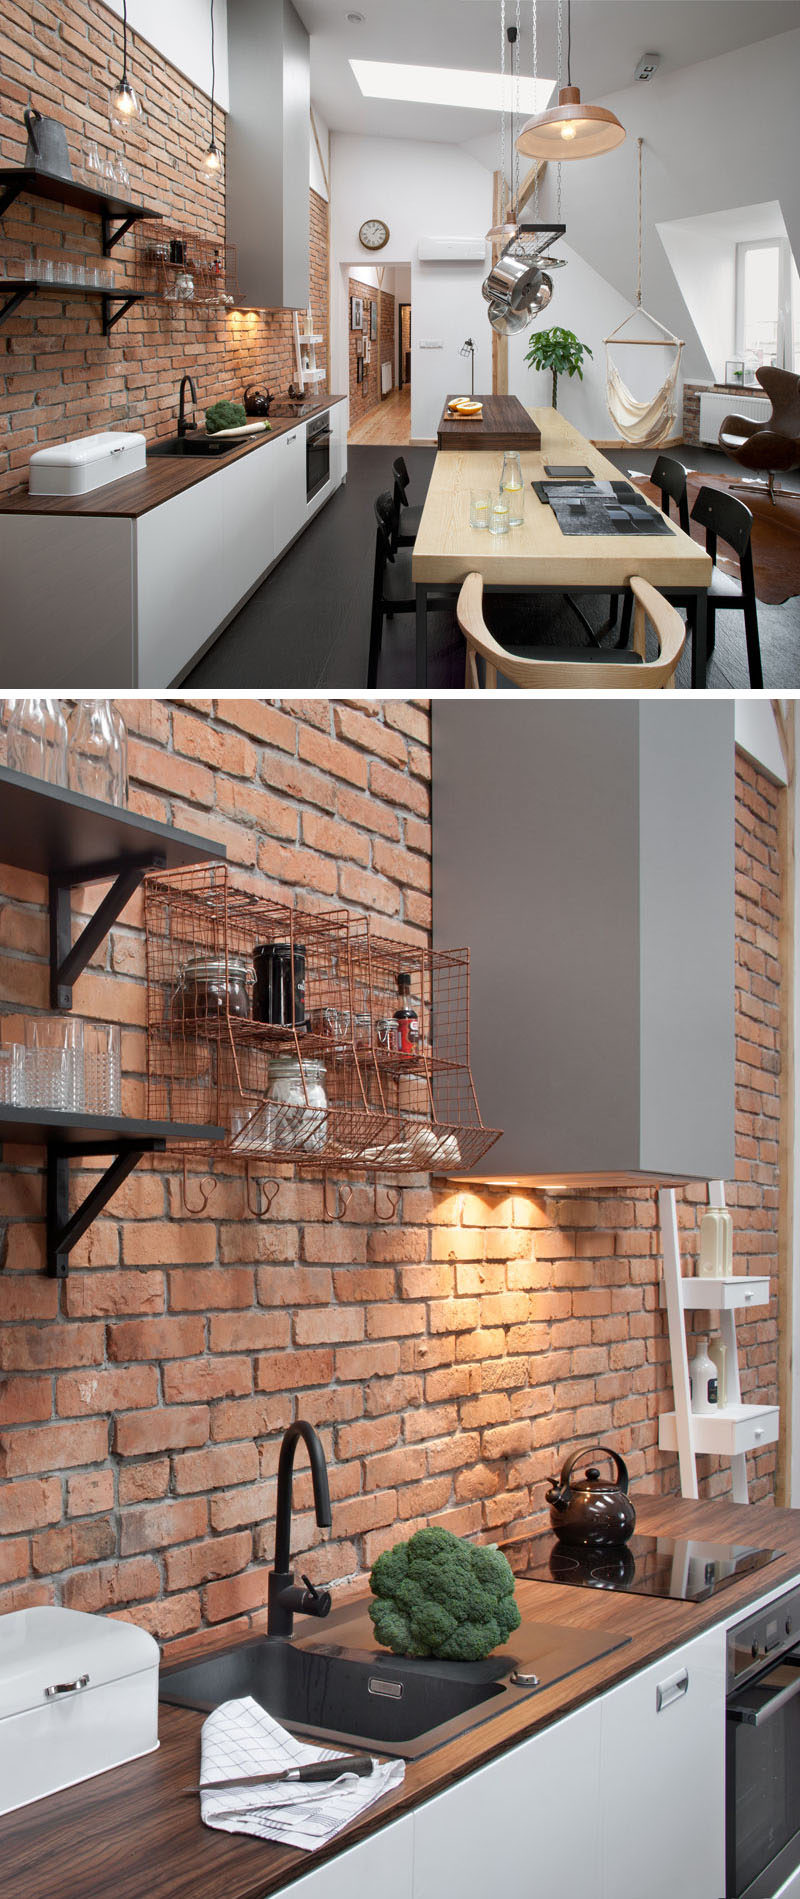 Throughout this apartment kitchen there are bright white walls, touches of brick and wood, which all pair nicely with the wood and dark charcoal gray tiled flooring.